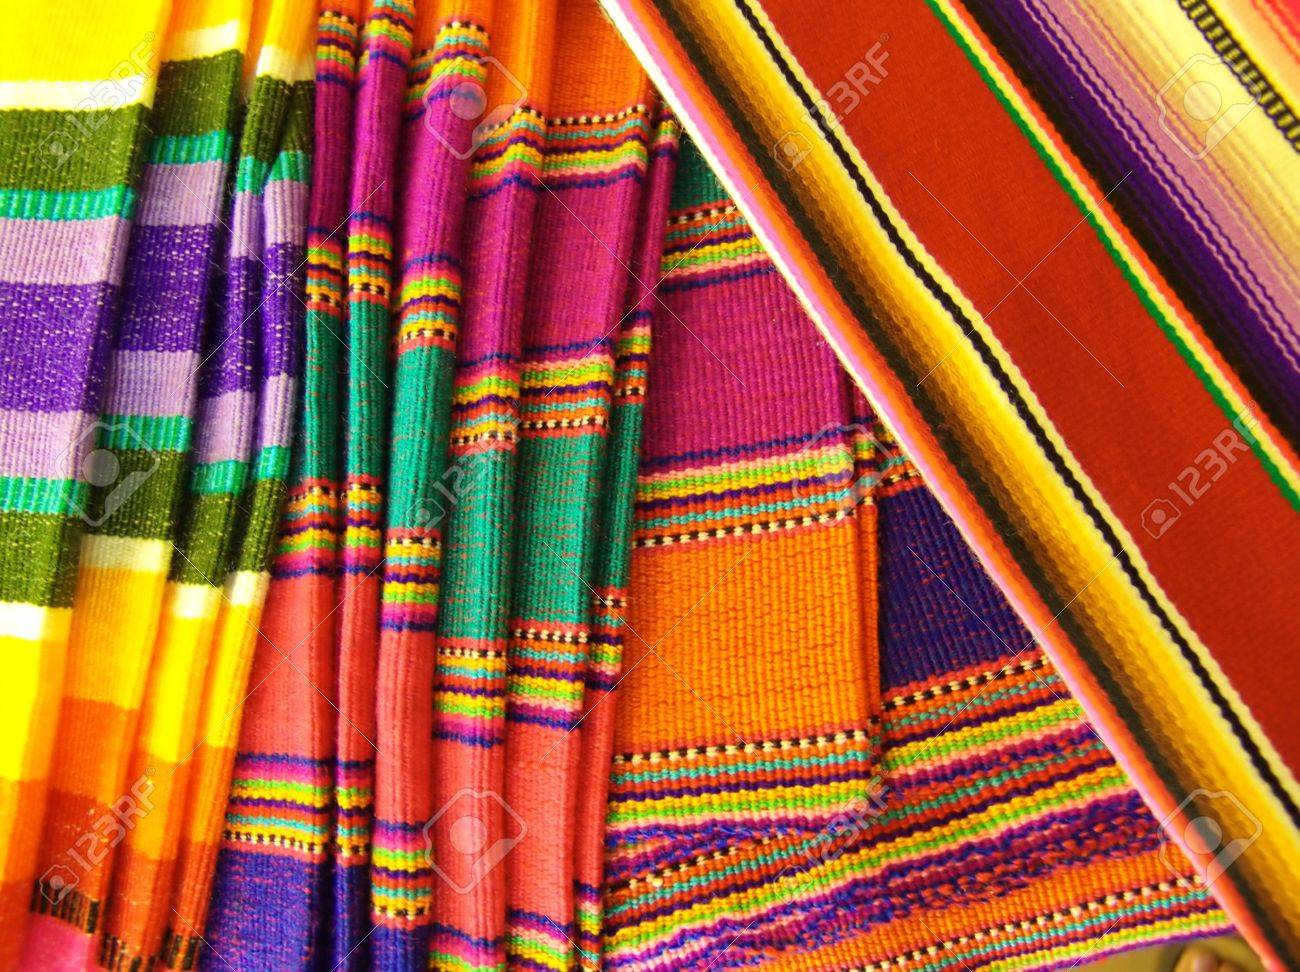 Colorful Mexican Blankets. Taken in Cozumel, Mexico. - 2676198